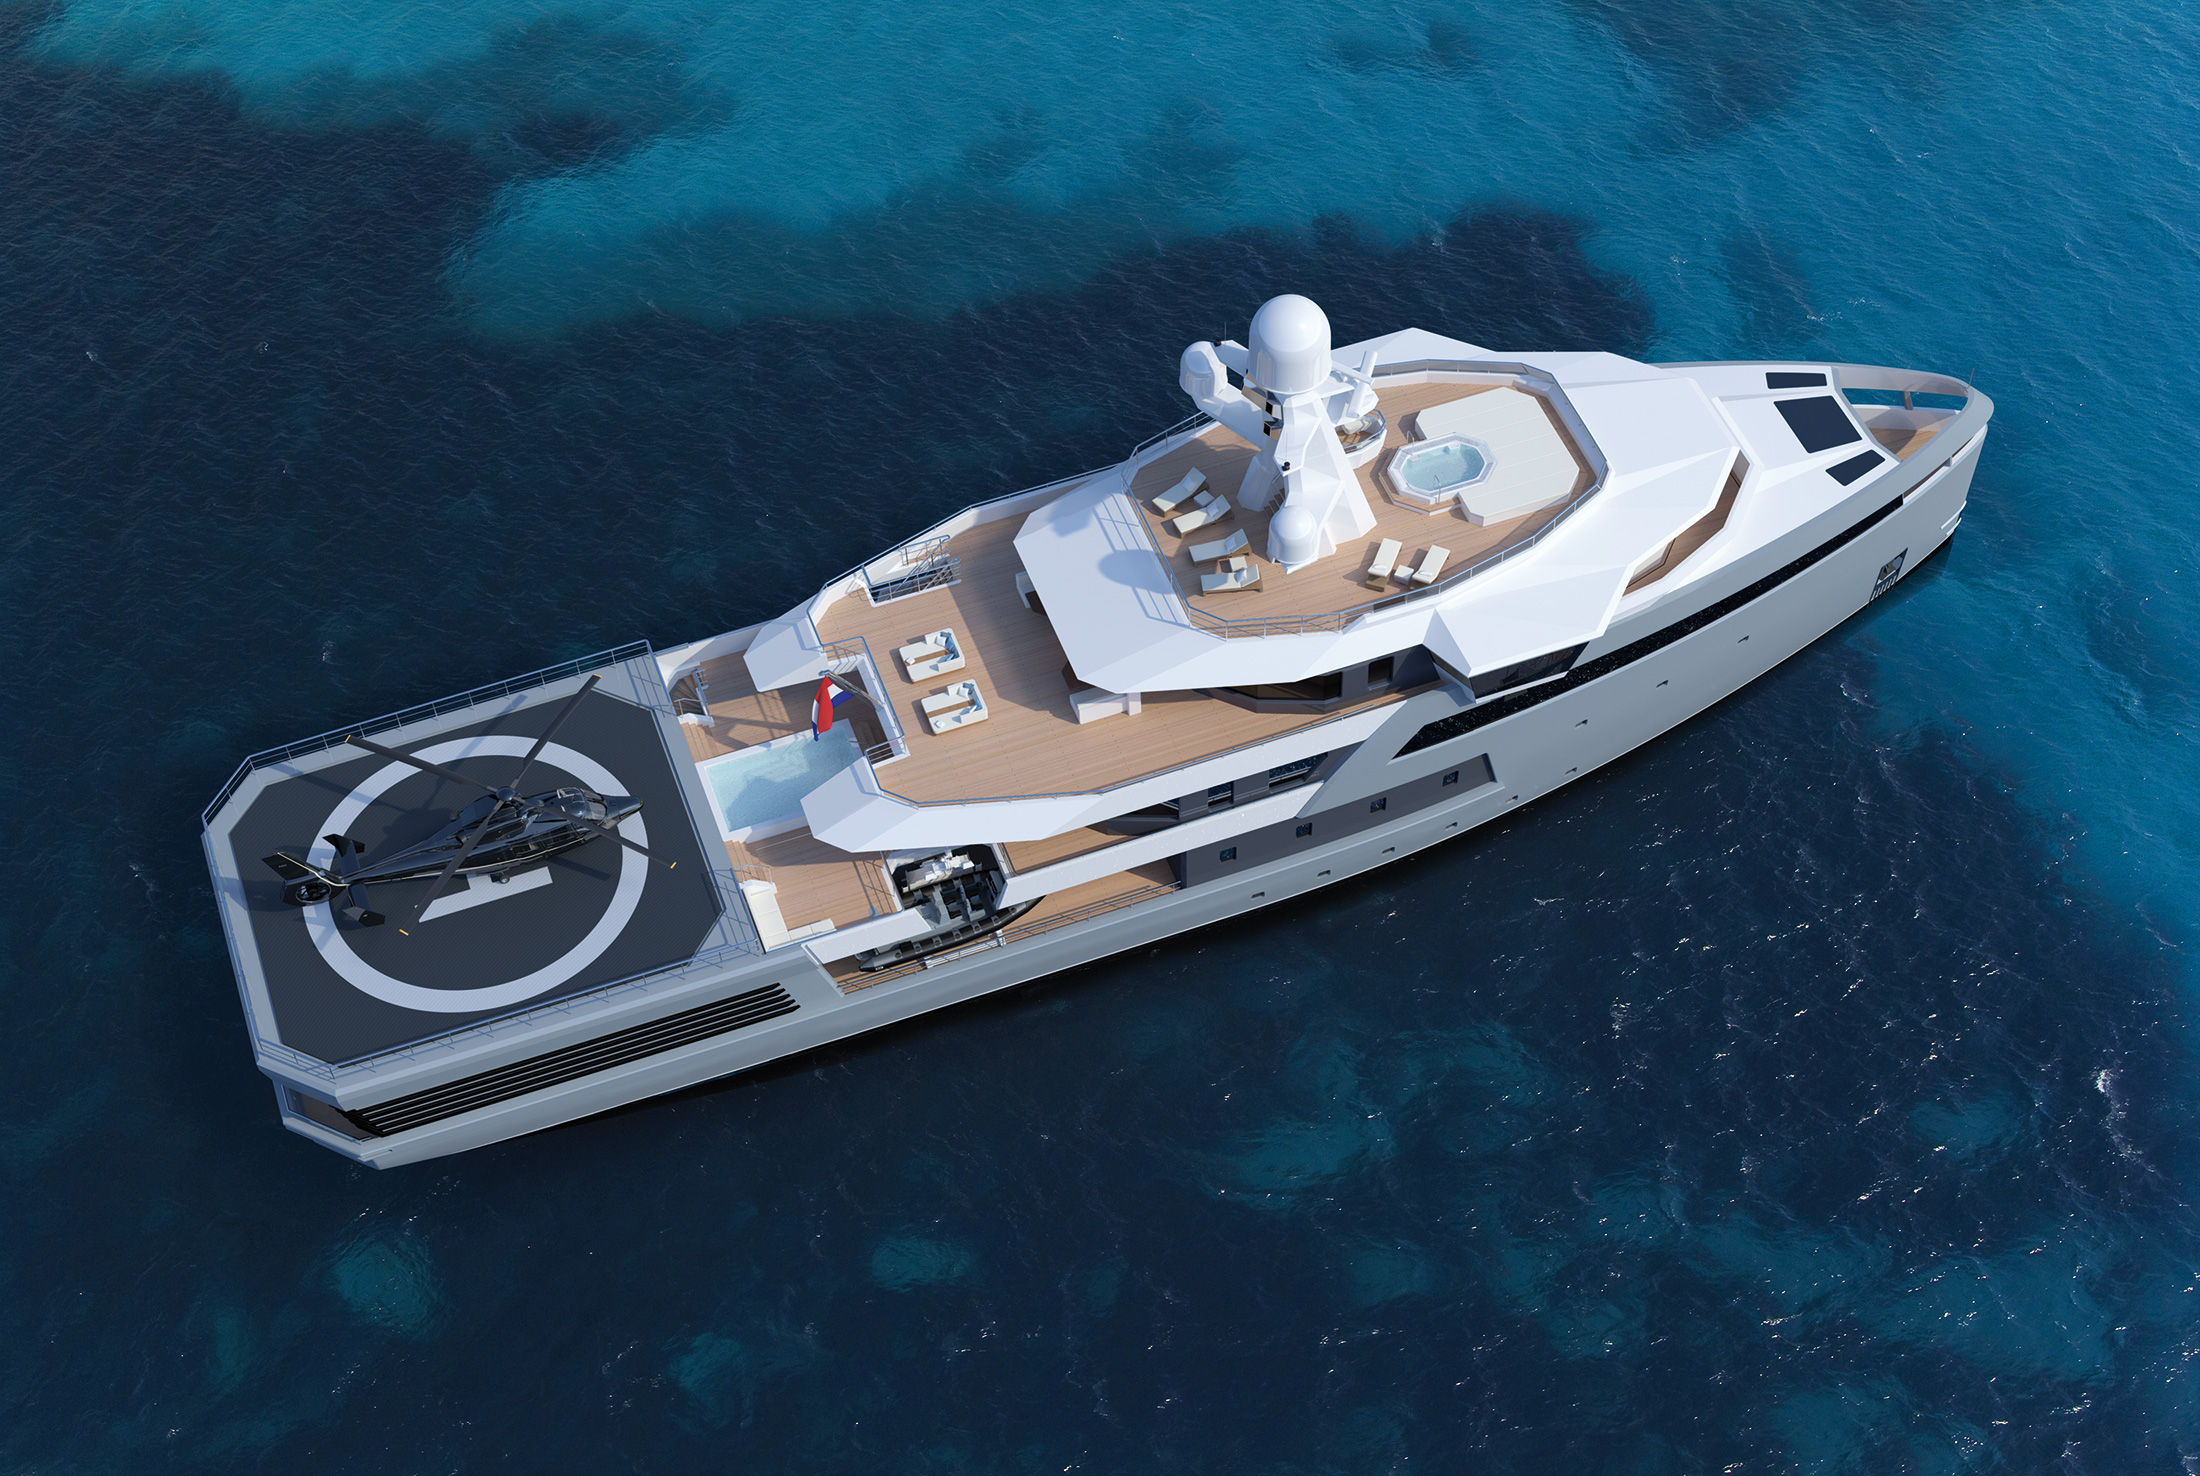 SeaExplorer 65 - Tropical overview - rendering